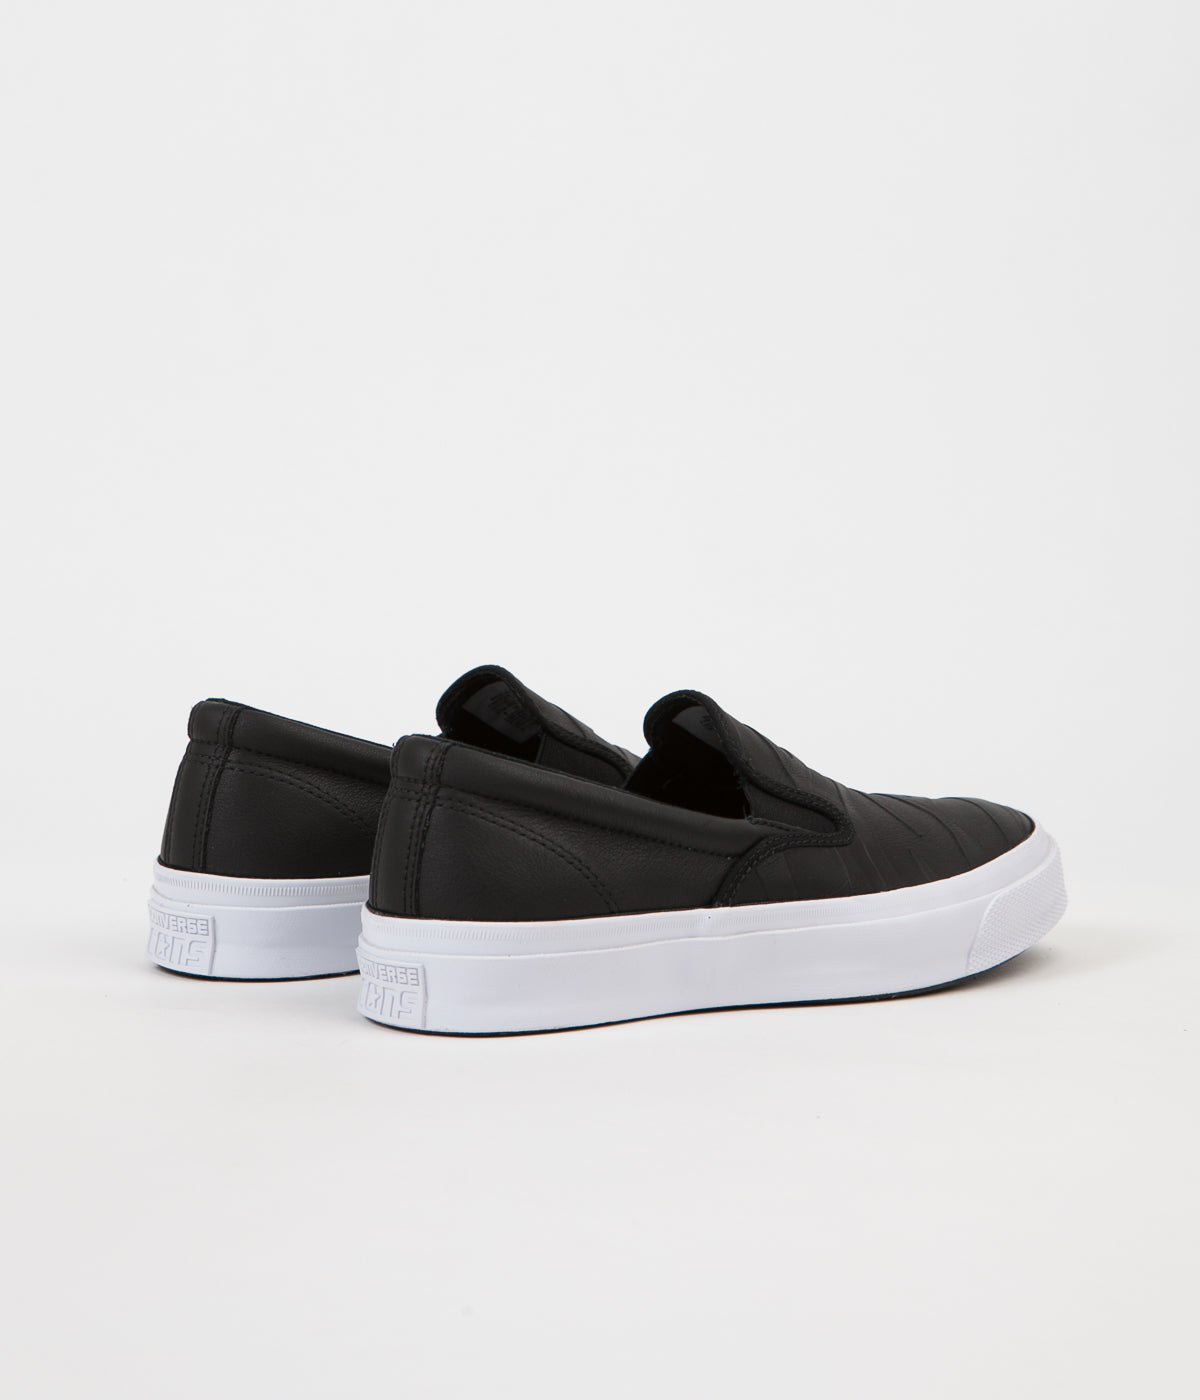 Converse Jason Jesse '67 Deckstar Slip On Shoes - Black